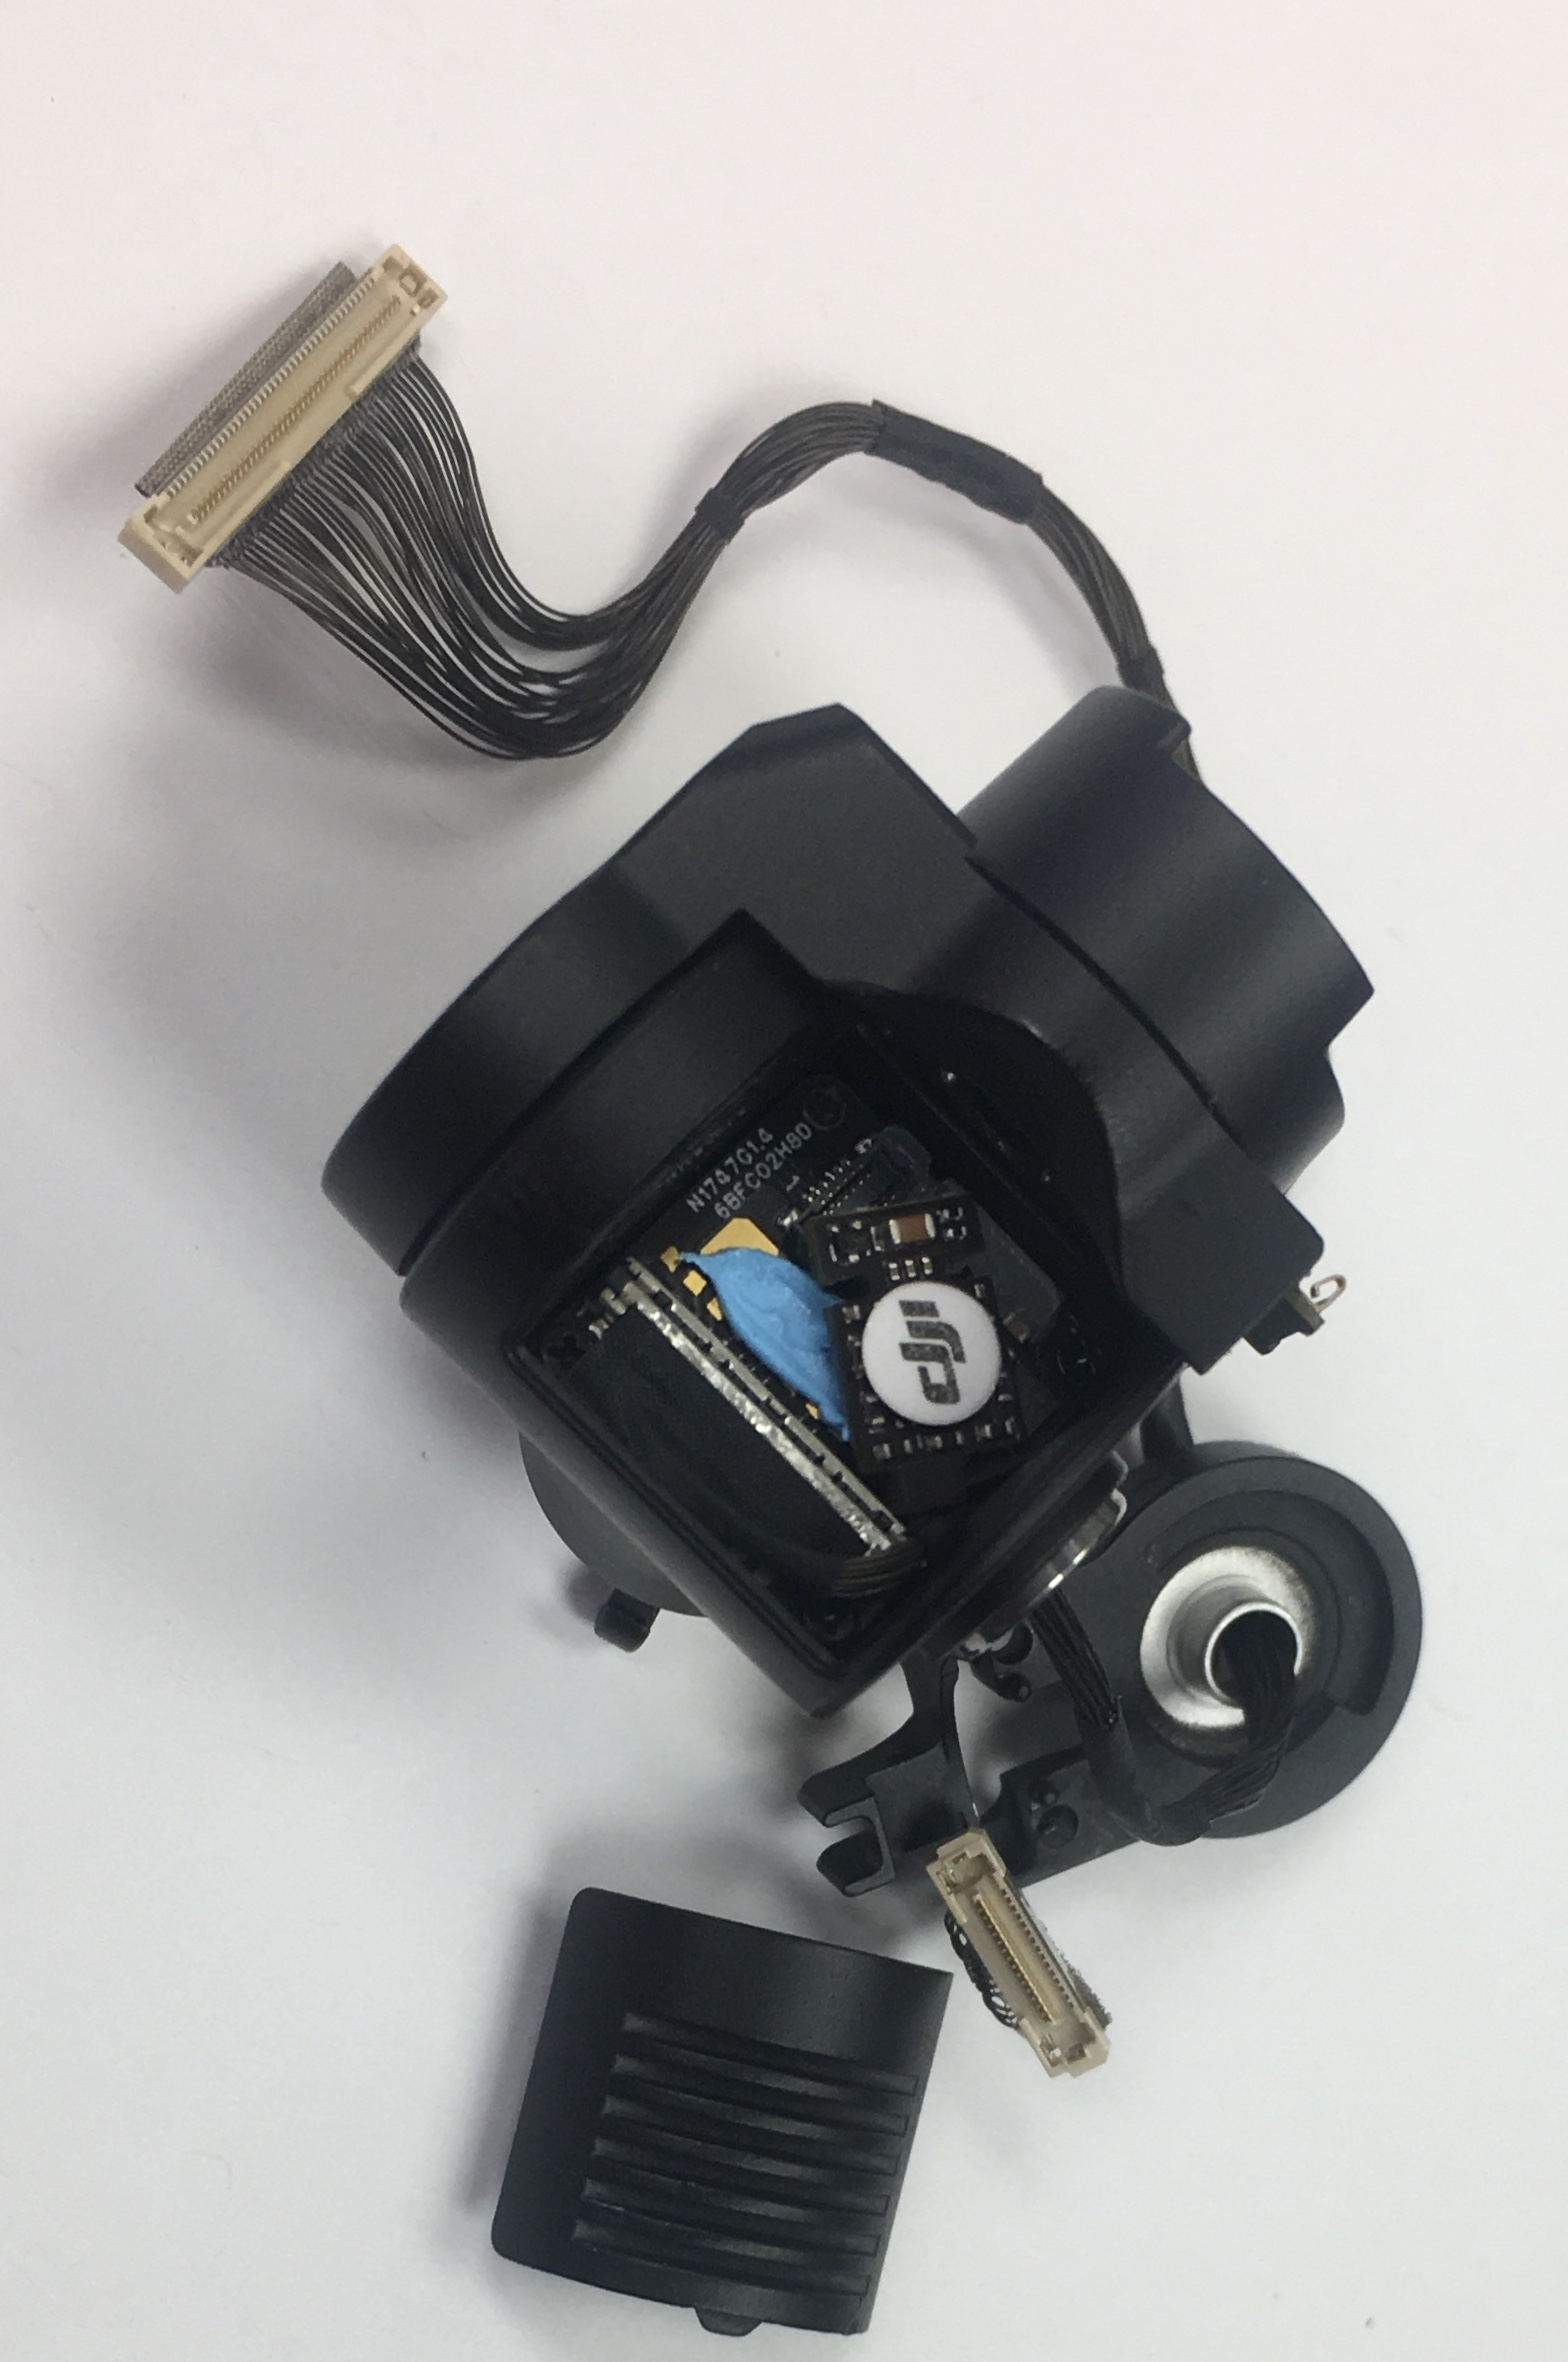 Fix Mavic Air Defective Gimbal Dji Forum